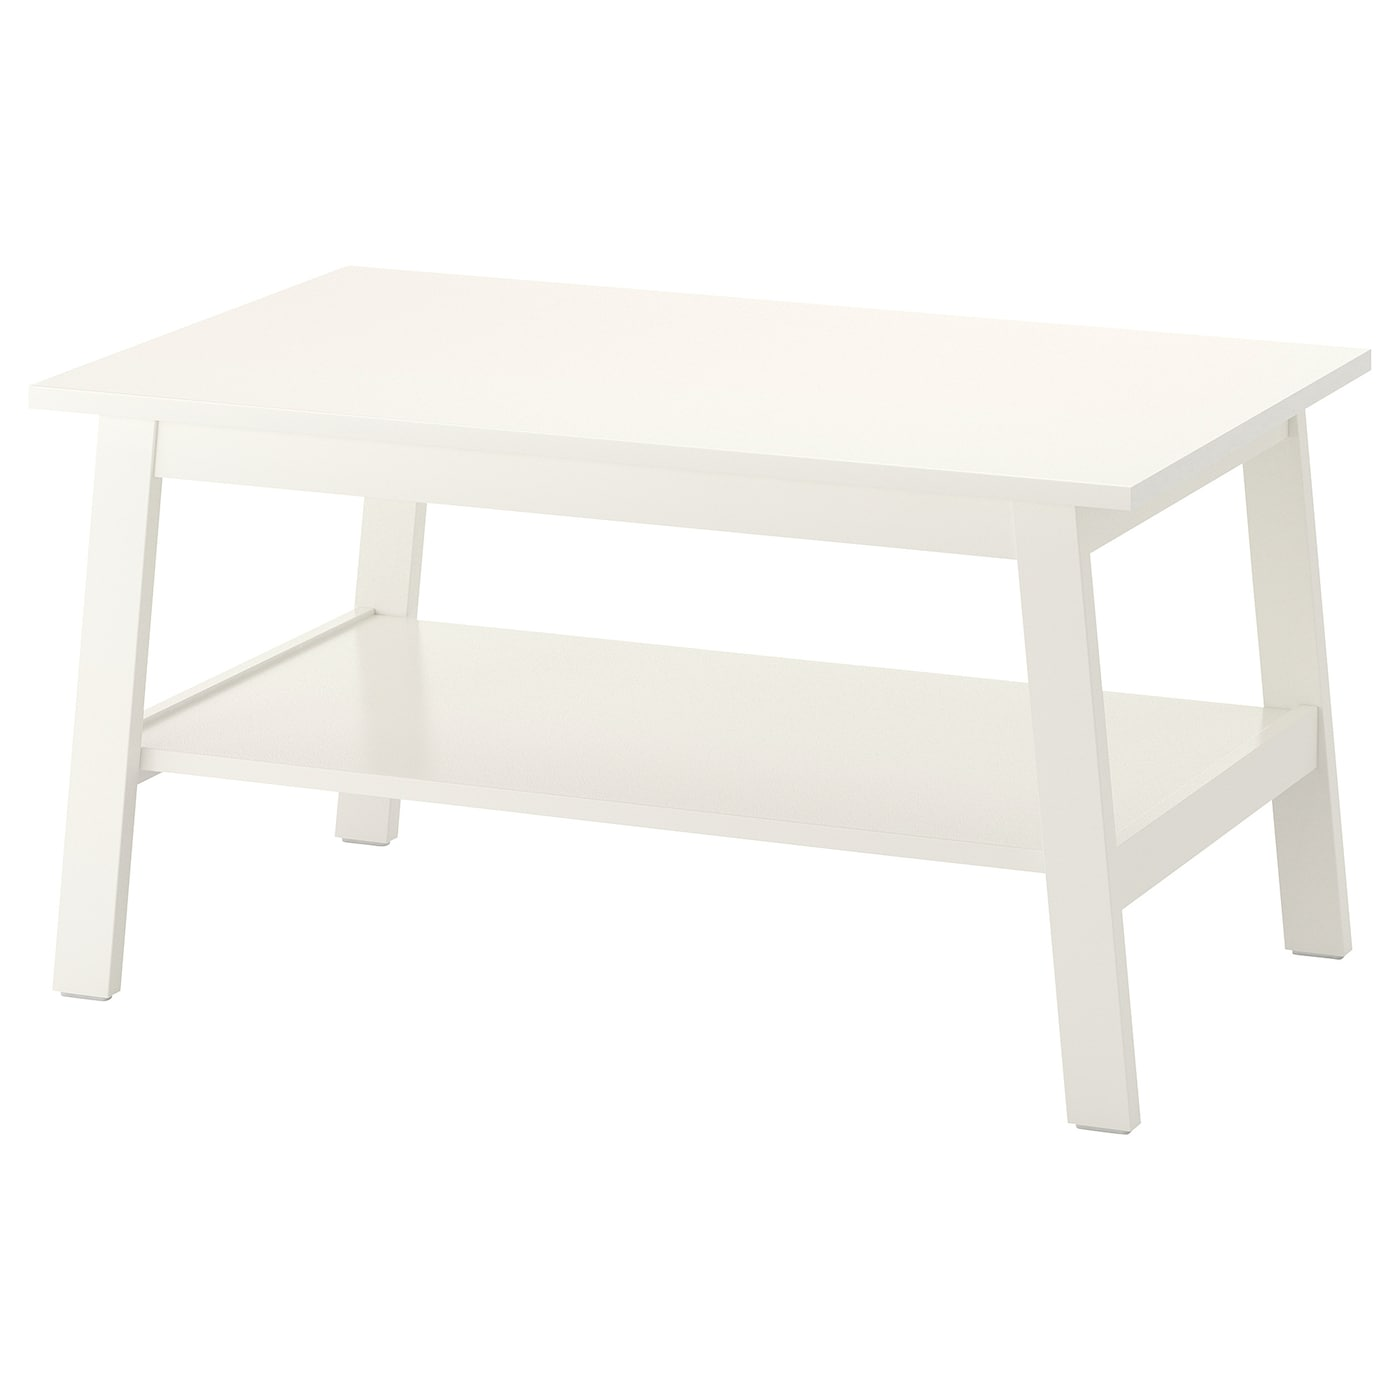 Tables de salon design originales en verre en bois ikea - Personnaliser table basse ikea ...